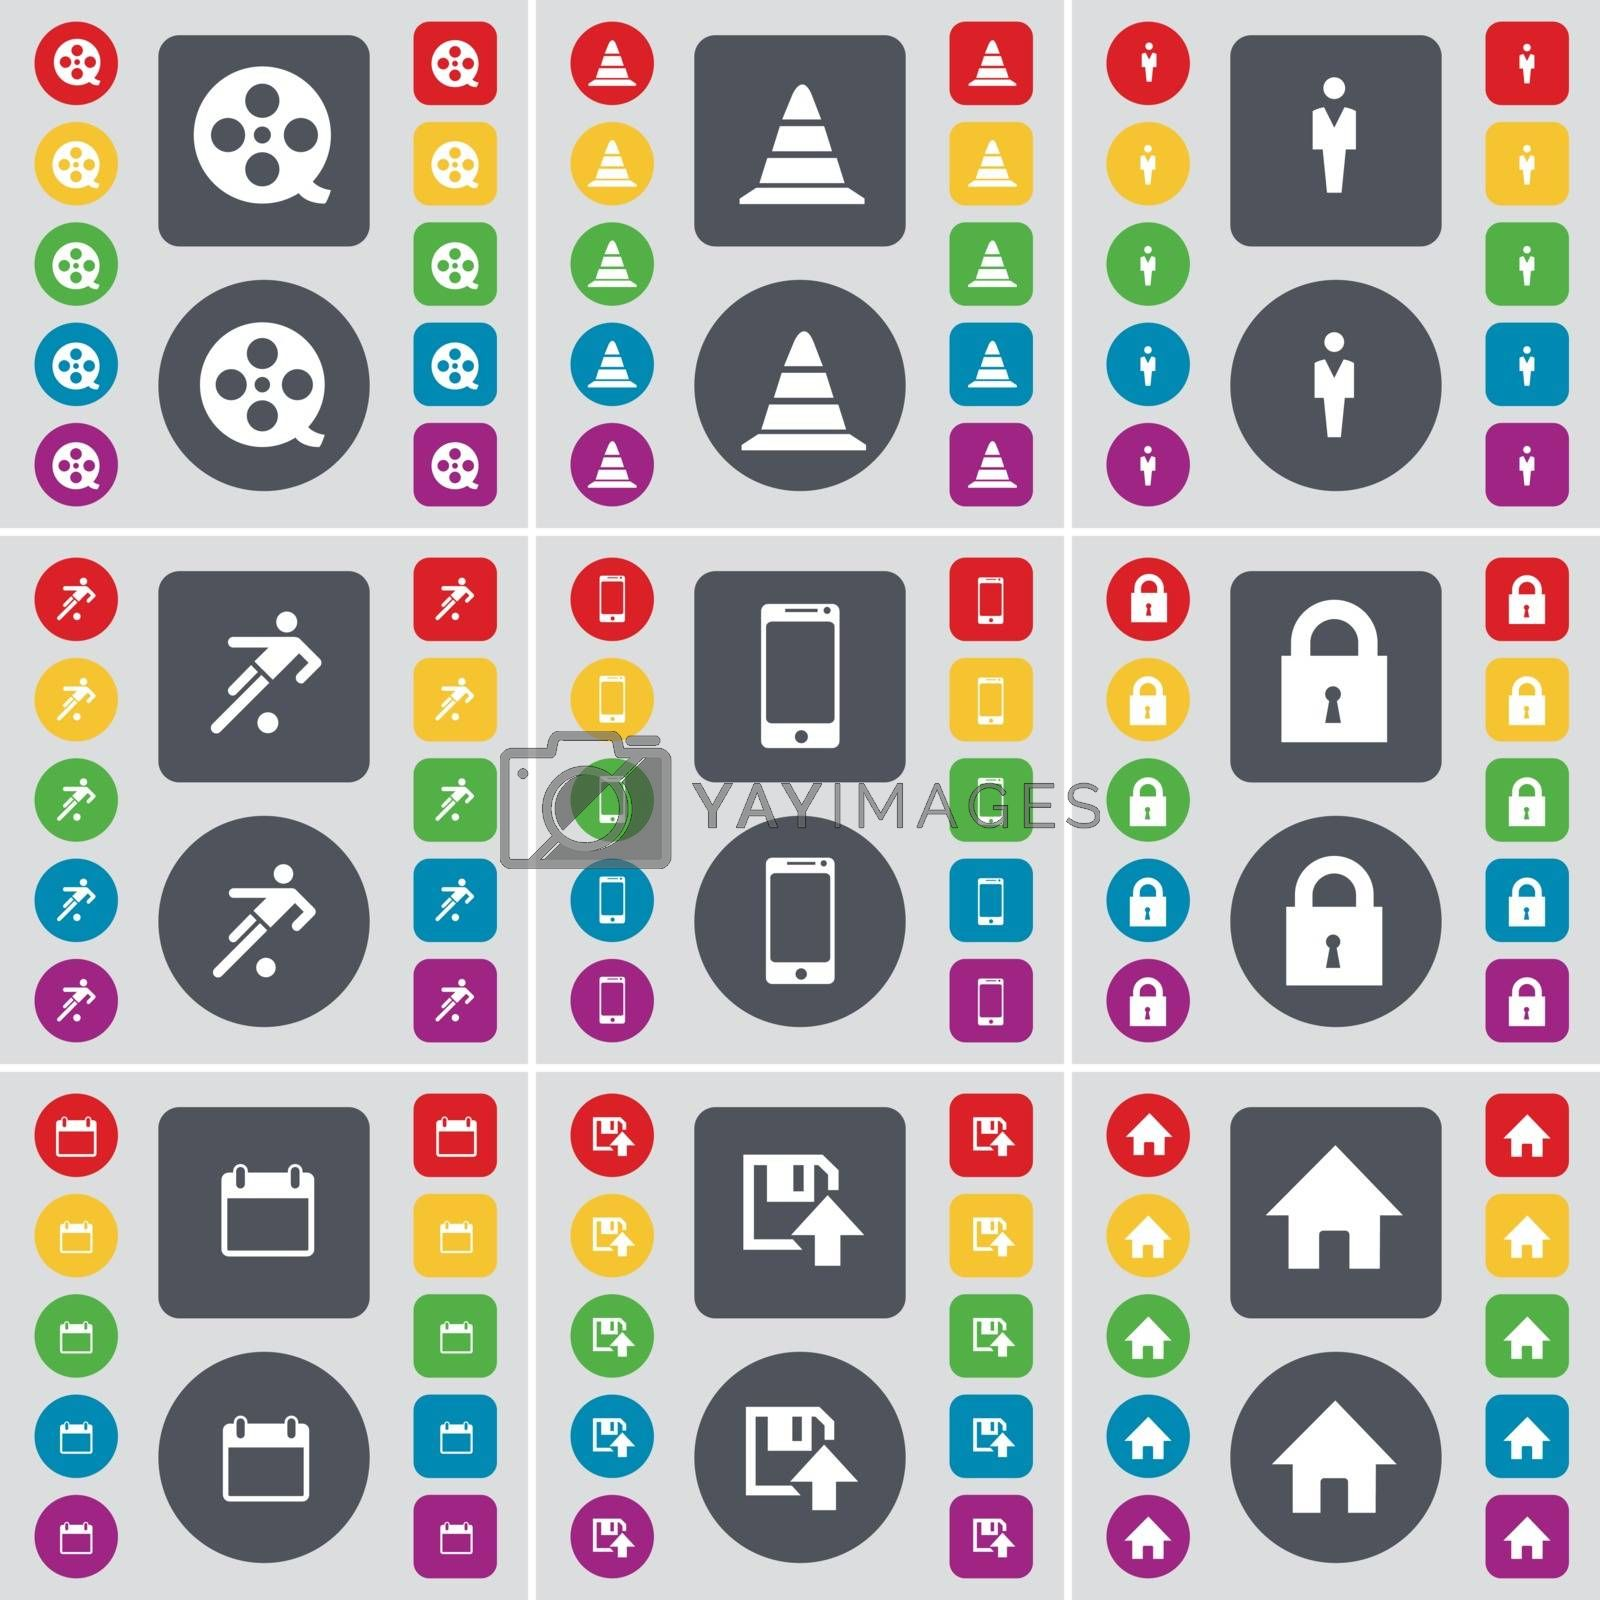 Royalty free image of Videotape, Cone, Silhouette, Football, Smartphone, Lock, Calendar, Floppy, House icon symbol. A large set of flat, colored buttons for your design. Vector by serhii_lohvyniuk